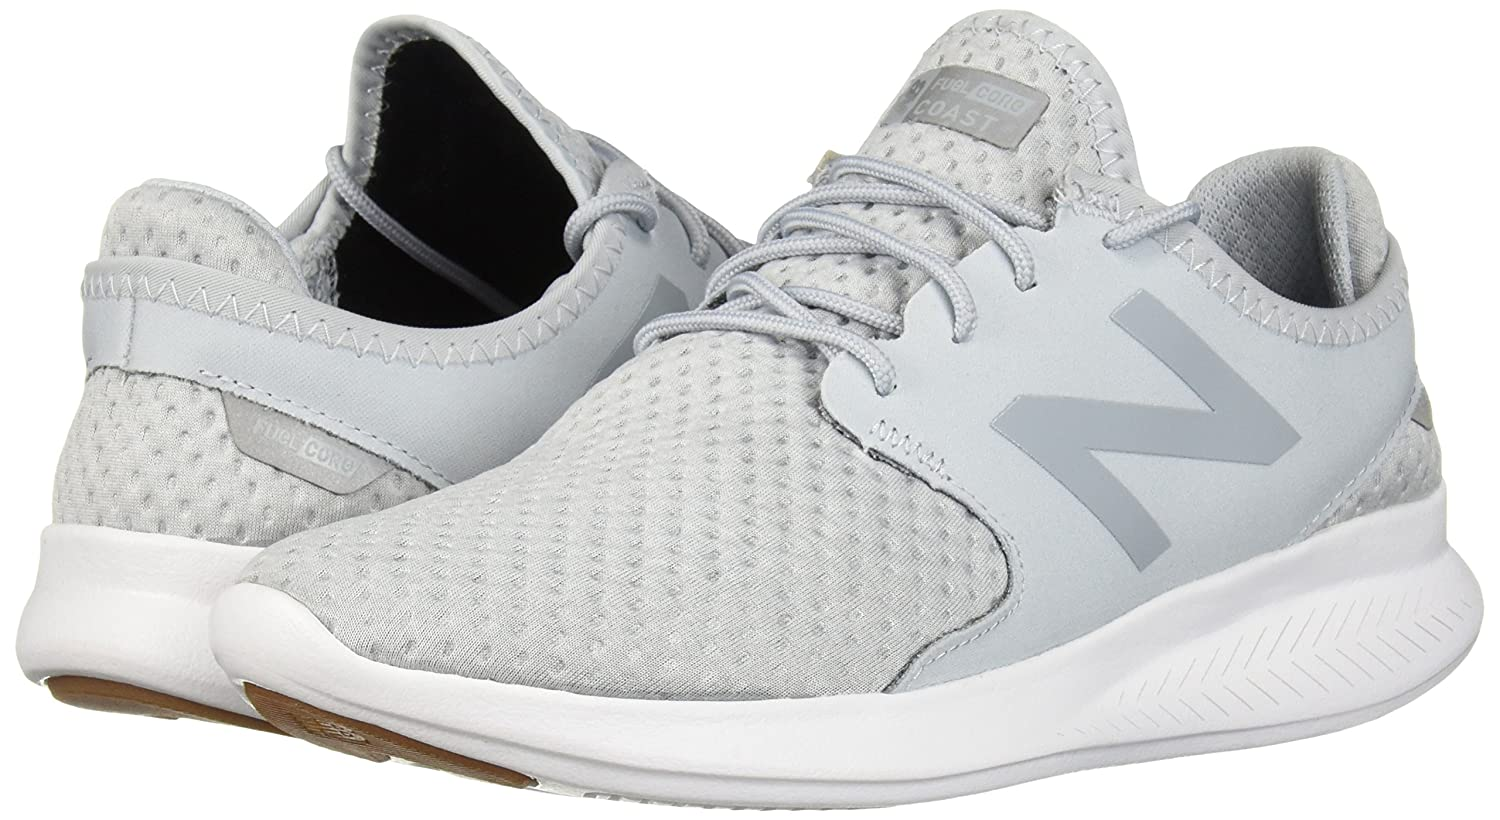 New Balance Women's Coast-V3 US|Light Running Shoe B01N6KJUN1 6 B(M) US|Light Coast-V3 Cyclone/Silver 4a228a